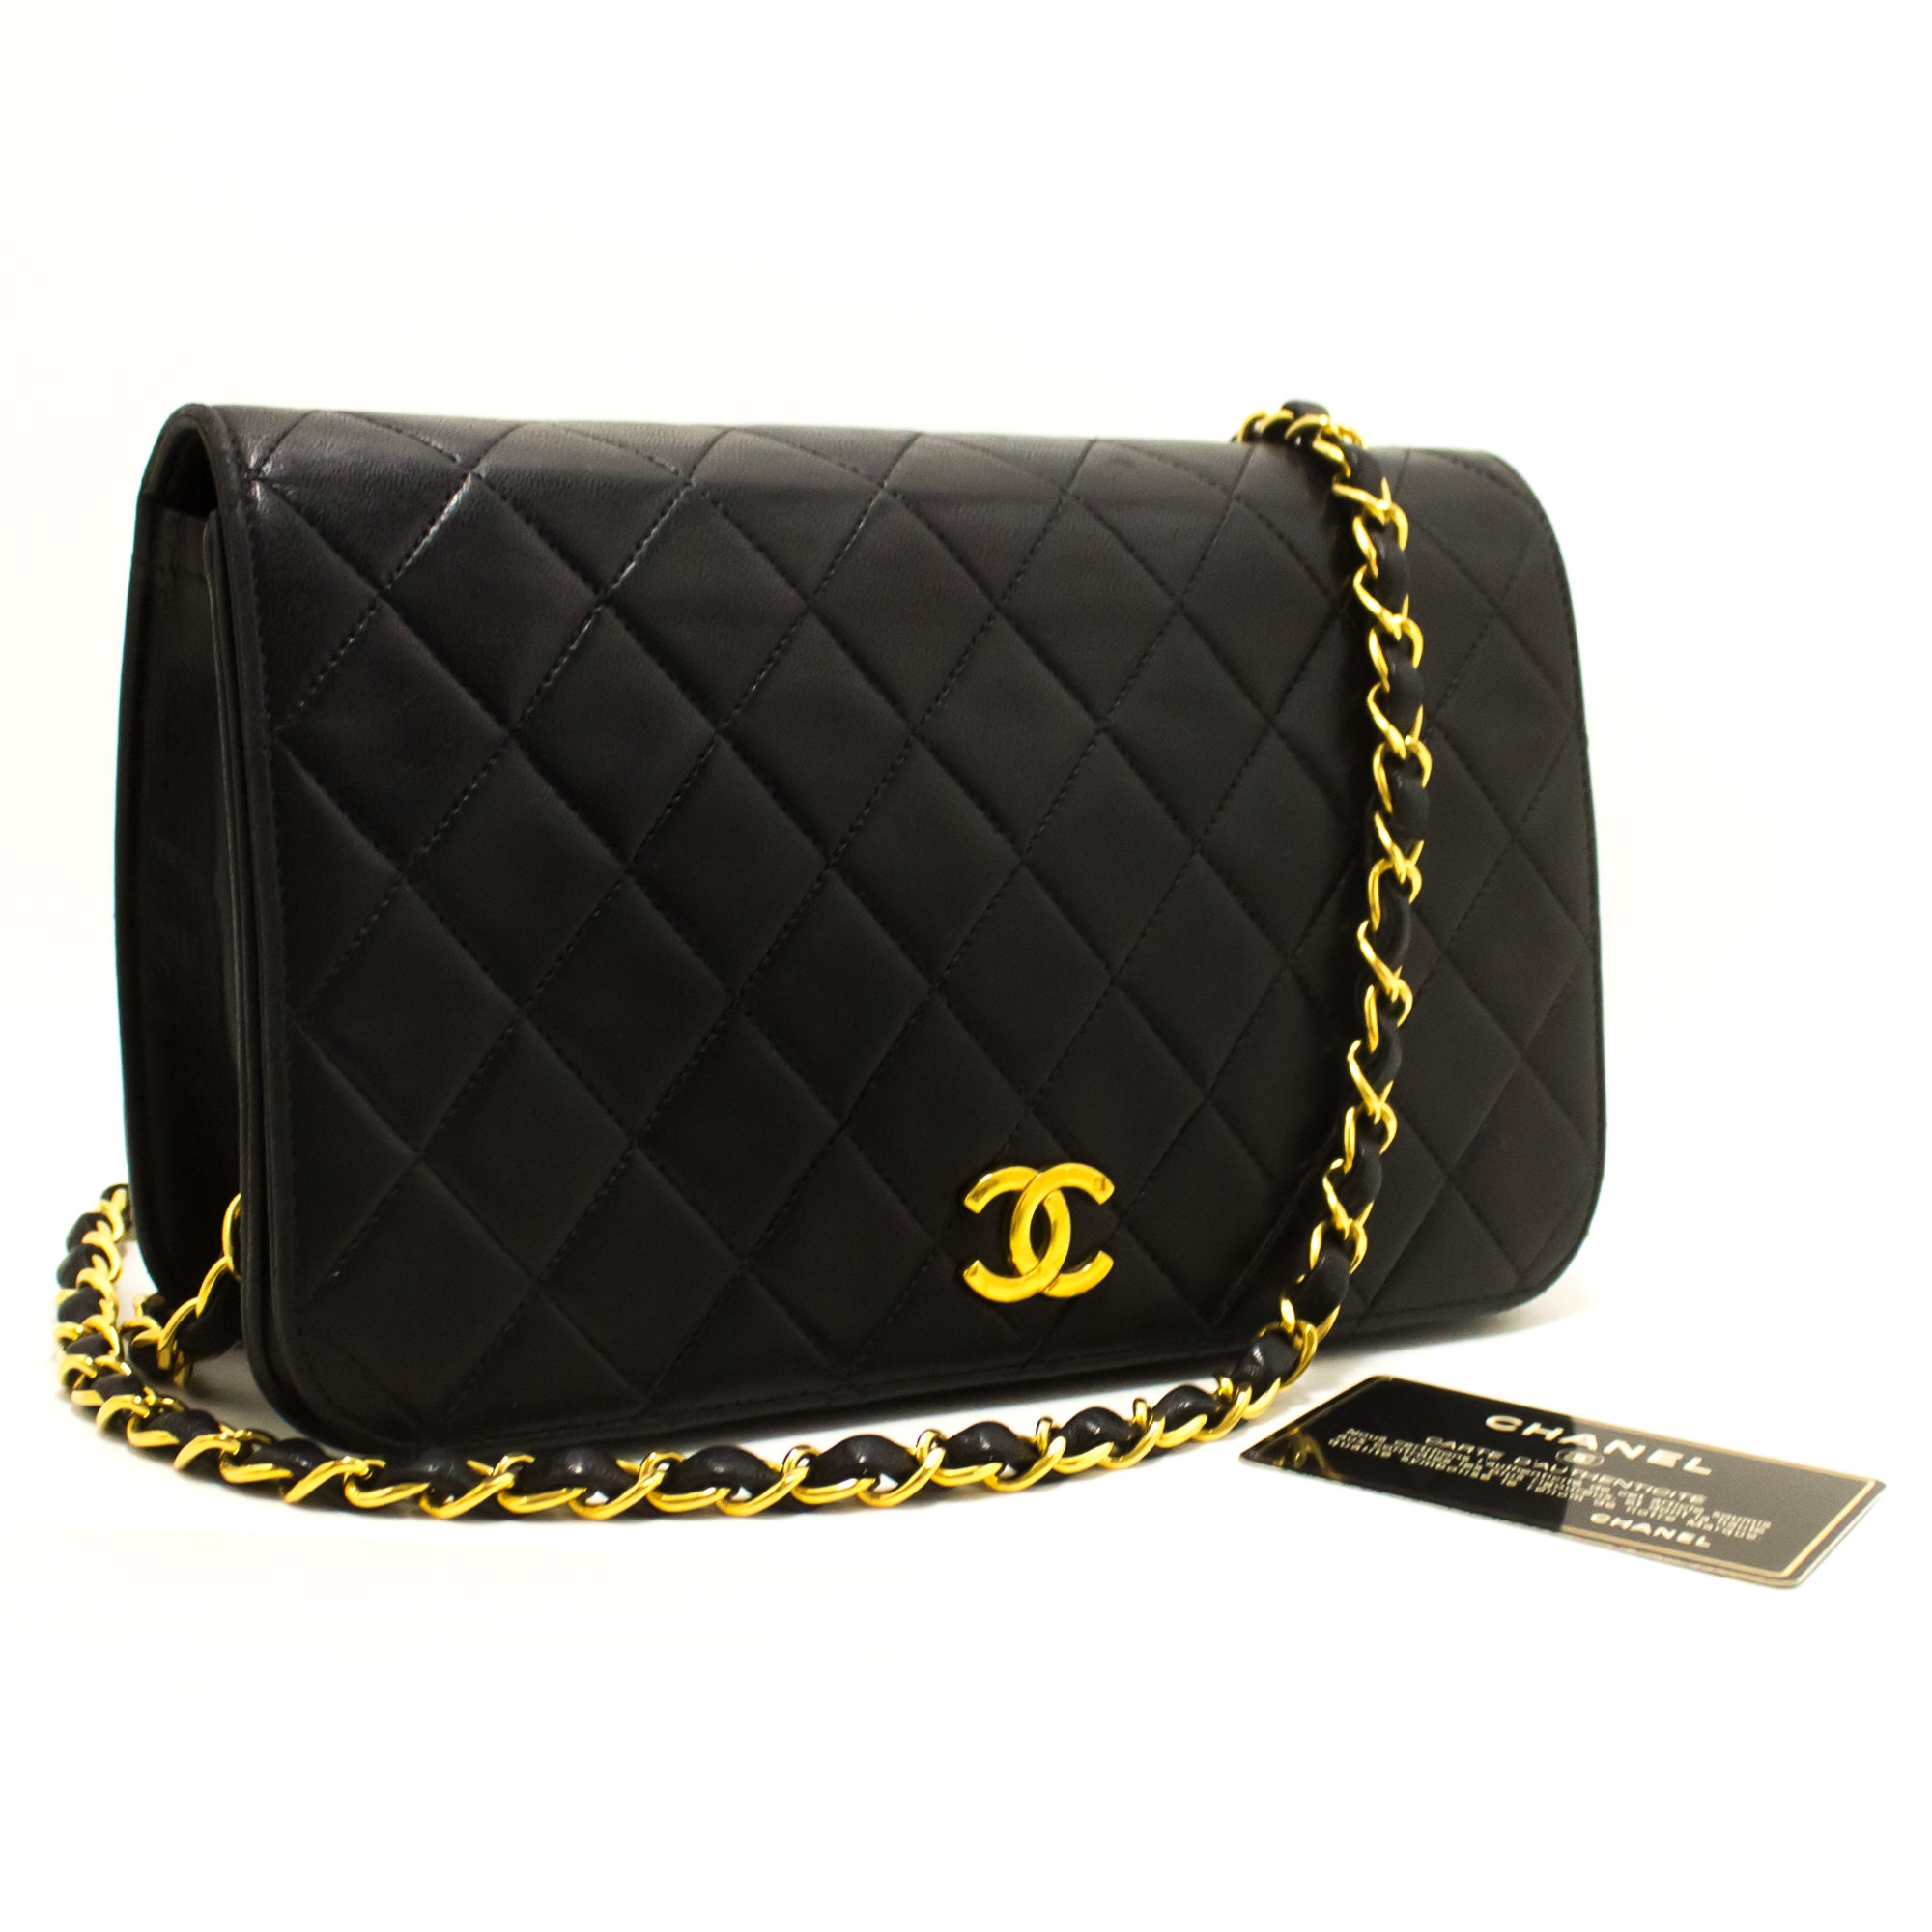 091a14511439 CHANEL Chain Shoulder Bag Clutch Black Quilted Flap Lambskin   Etsy